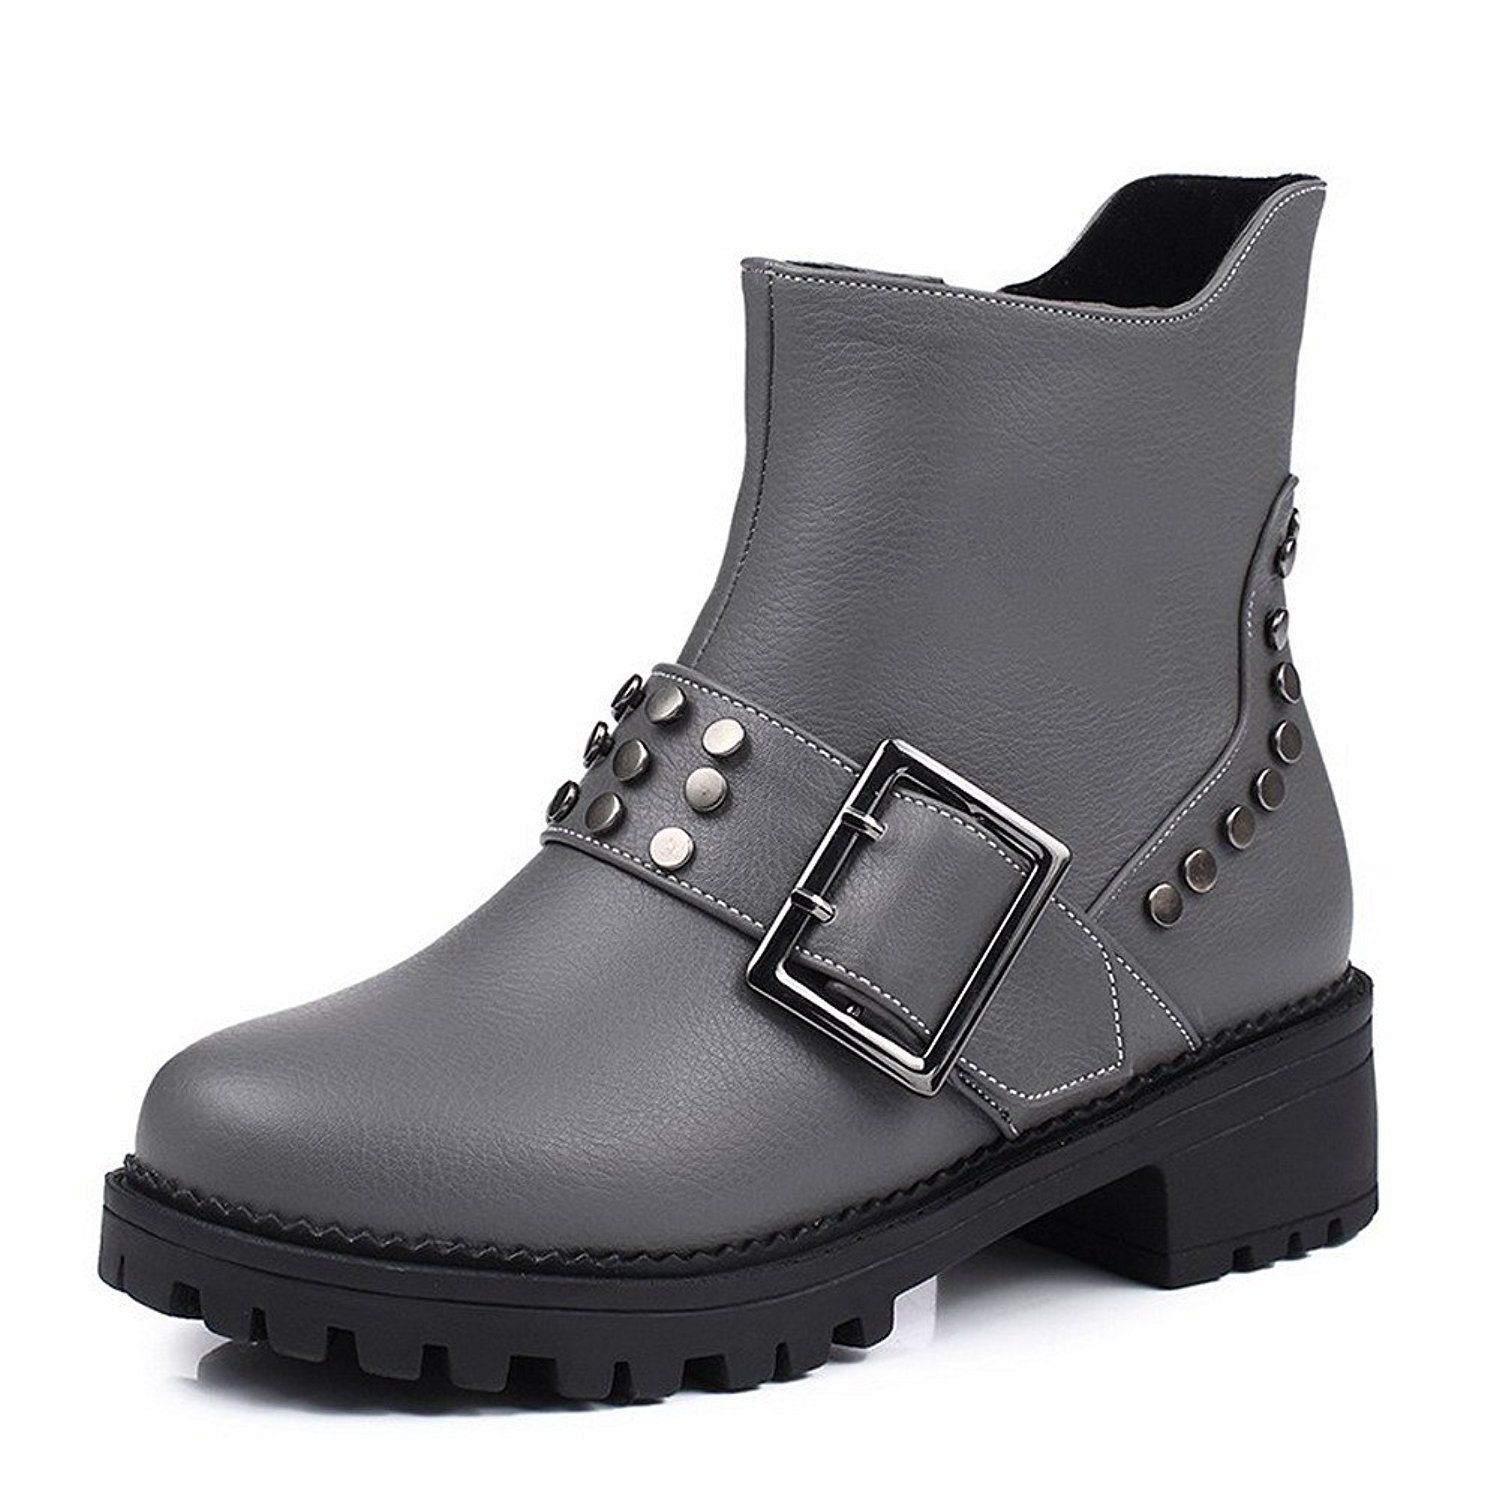 AmoonyFashion Women's Low-top Zipper Soft Material Kitten-Heels Round Closed Toe Boots ** Details can be found by clicking on the image.